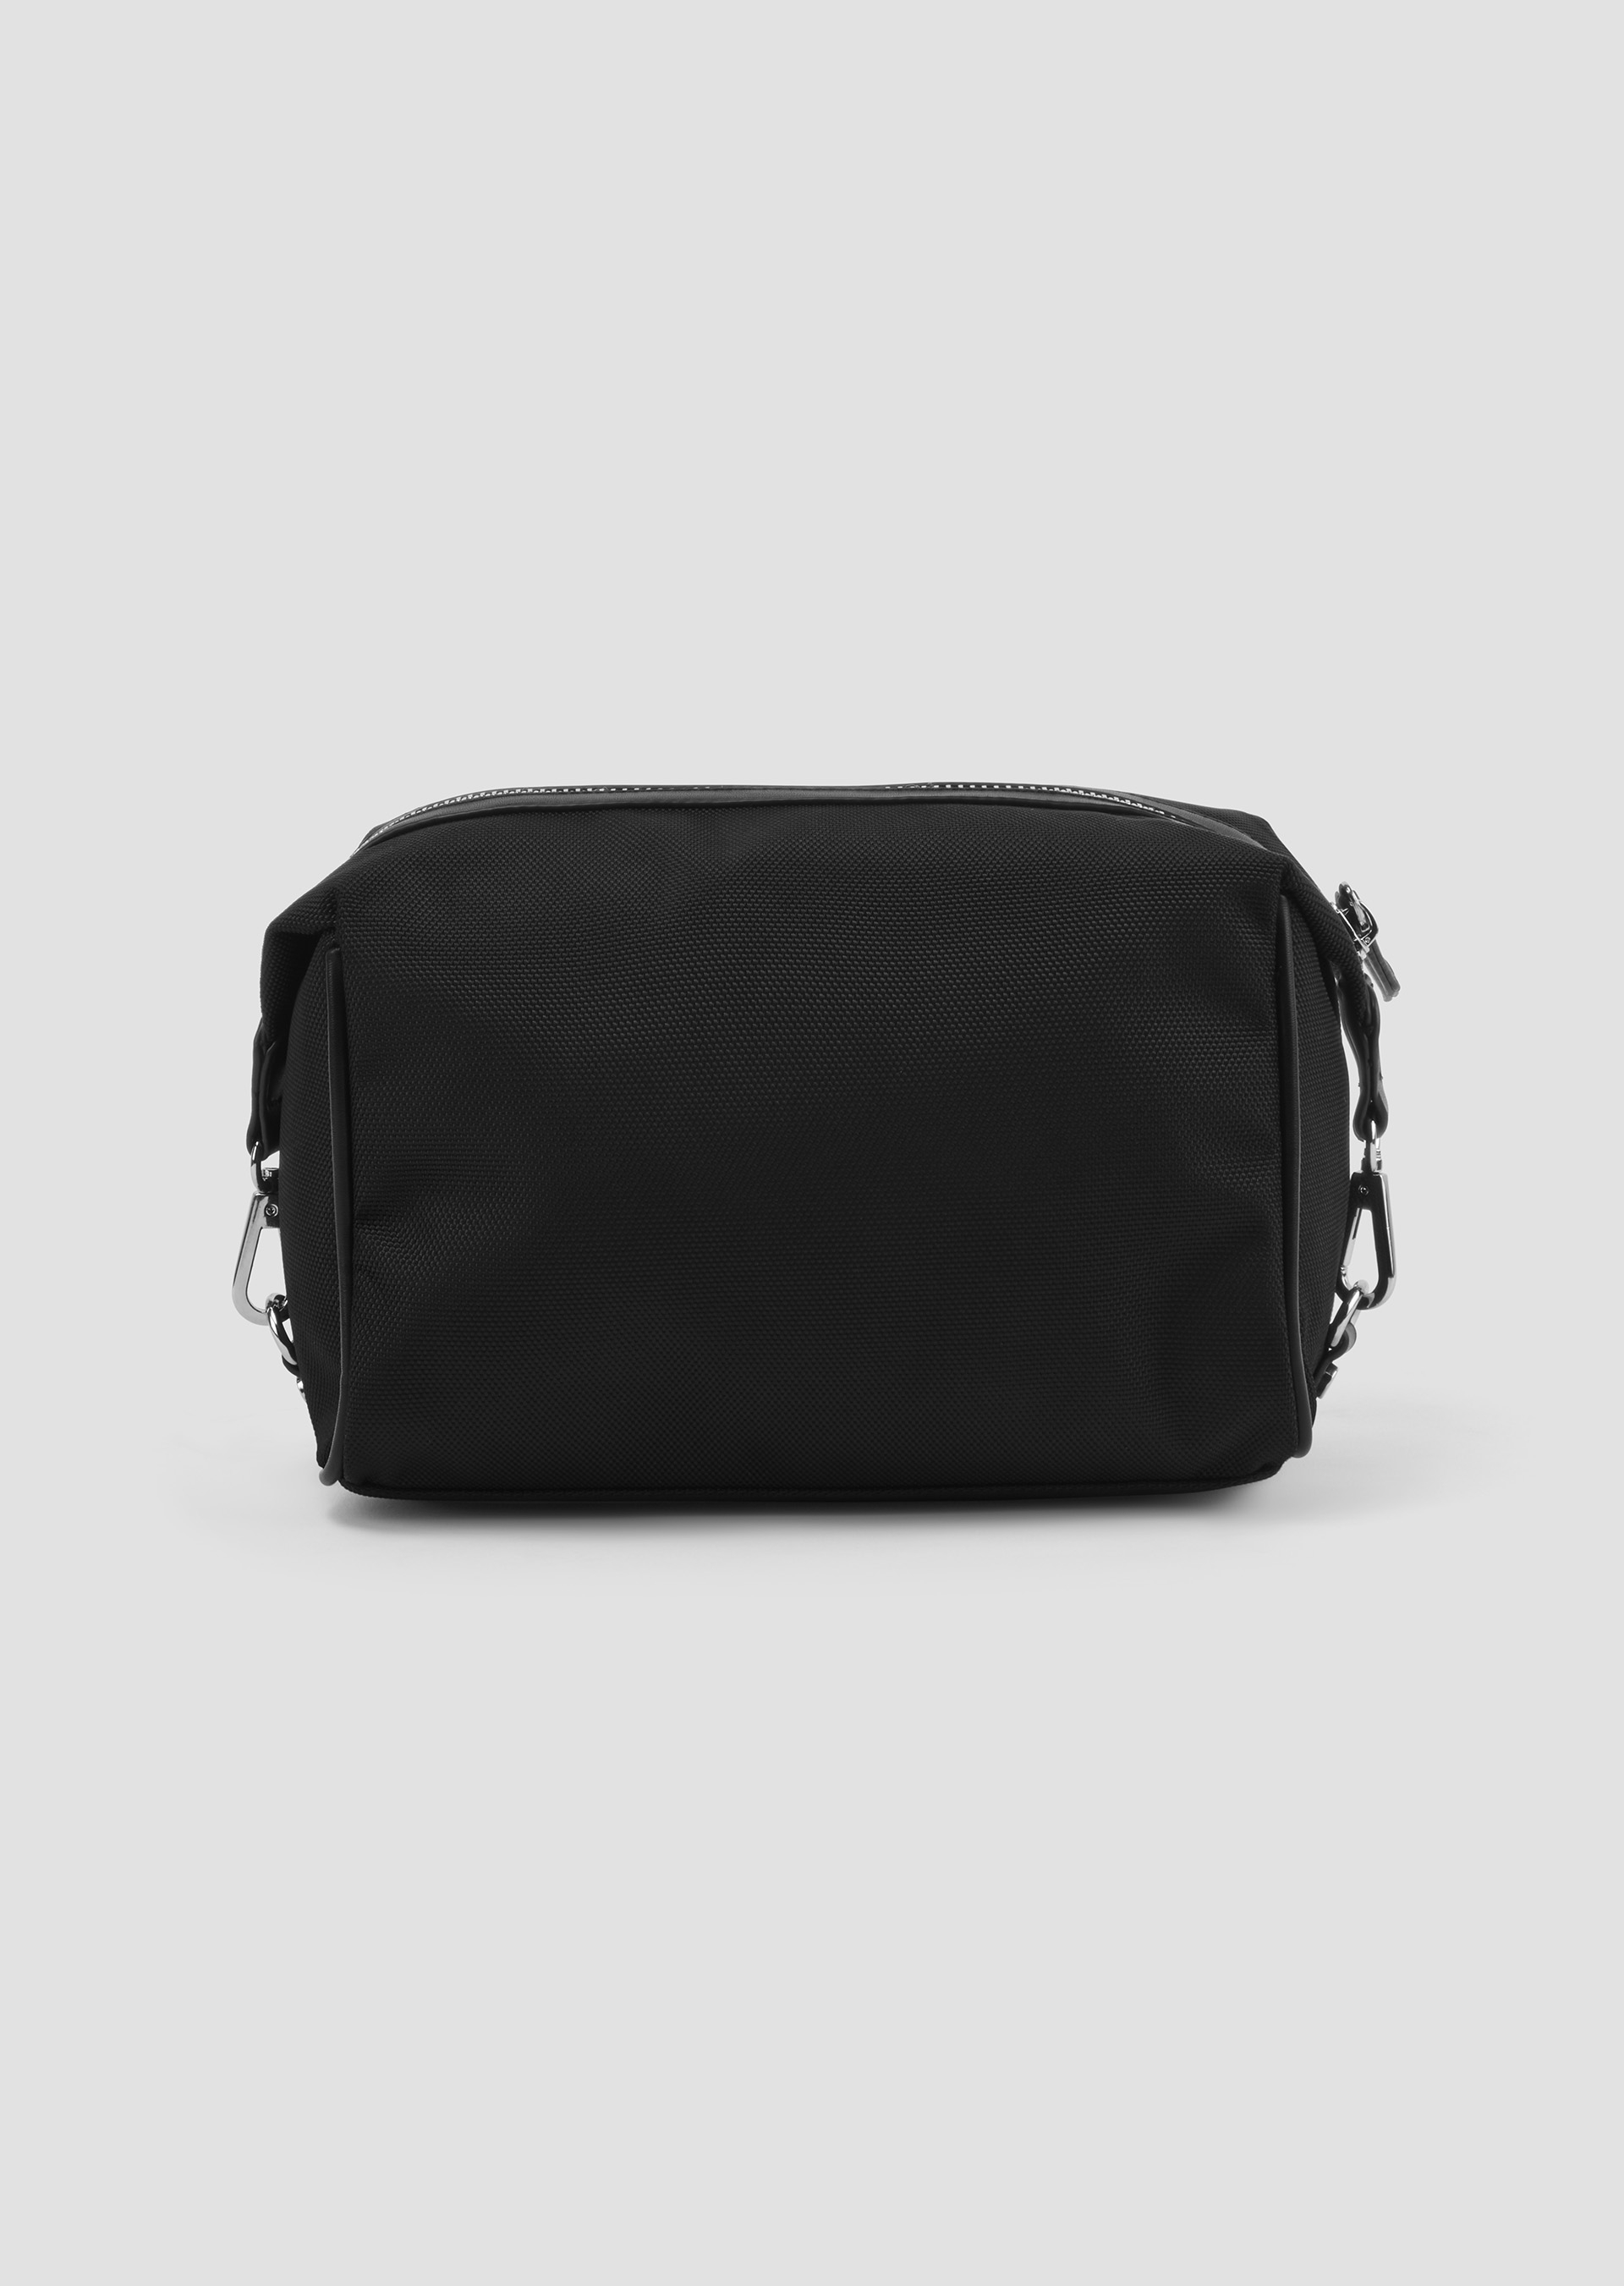 Toiletry bag in poly twill fabric with metal logo second_image